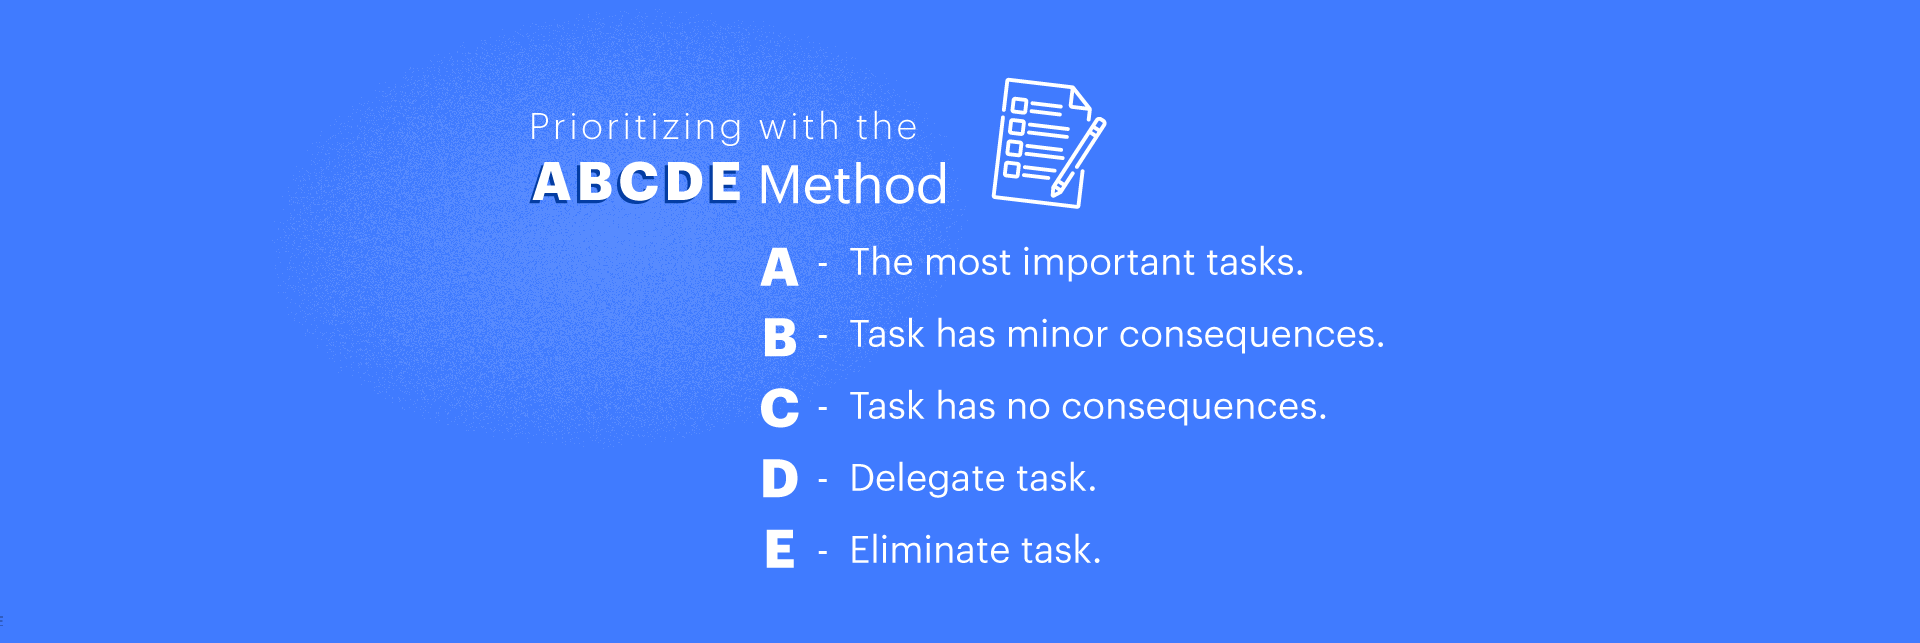 When there are too many tasks on your plate, learn to focus by prioritizing. You can use the ABCDE, Eisenhower Matrix, or any other prioritization technique as the first step to prevent stress. It would help you sort out tasks that are high, medium, or low on importance and urgency.